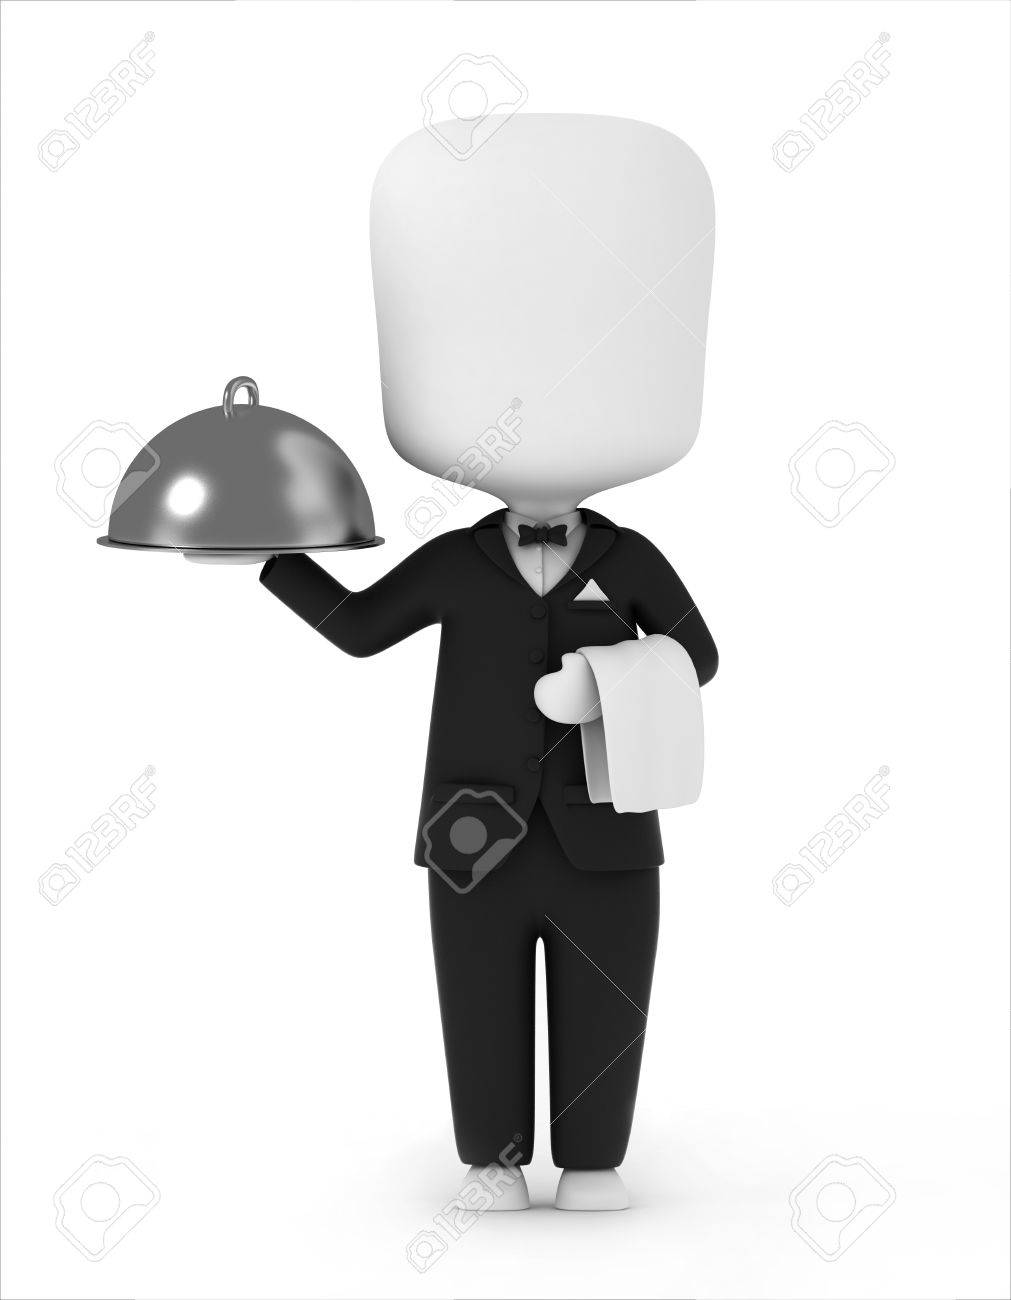 3D Illustration of a Waiter Carrying a Serving Tray and a Towel Stock Illustration - 8993539